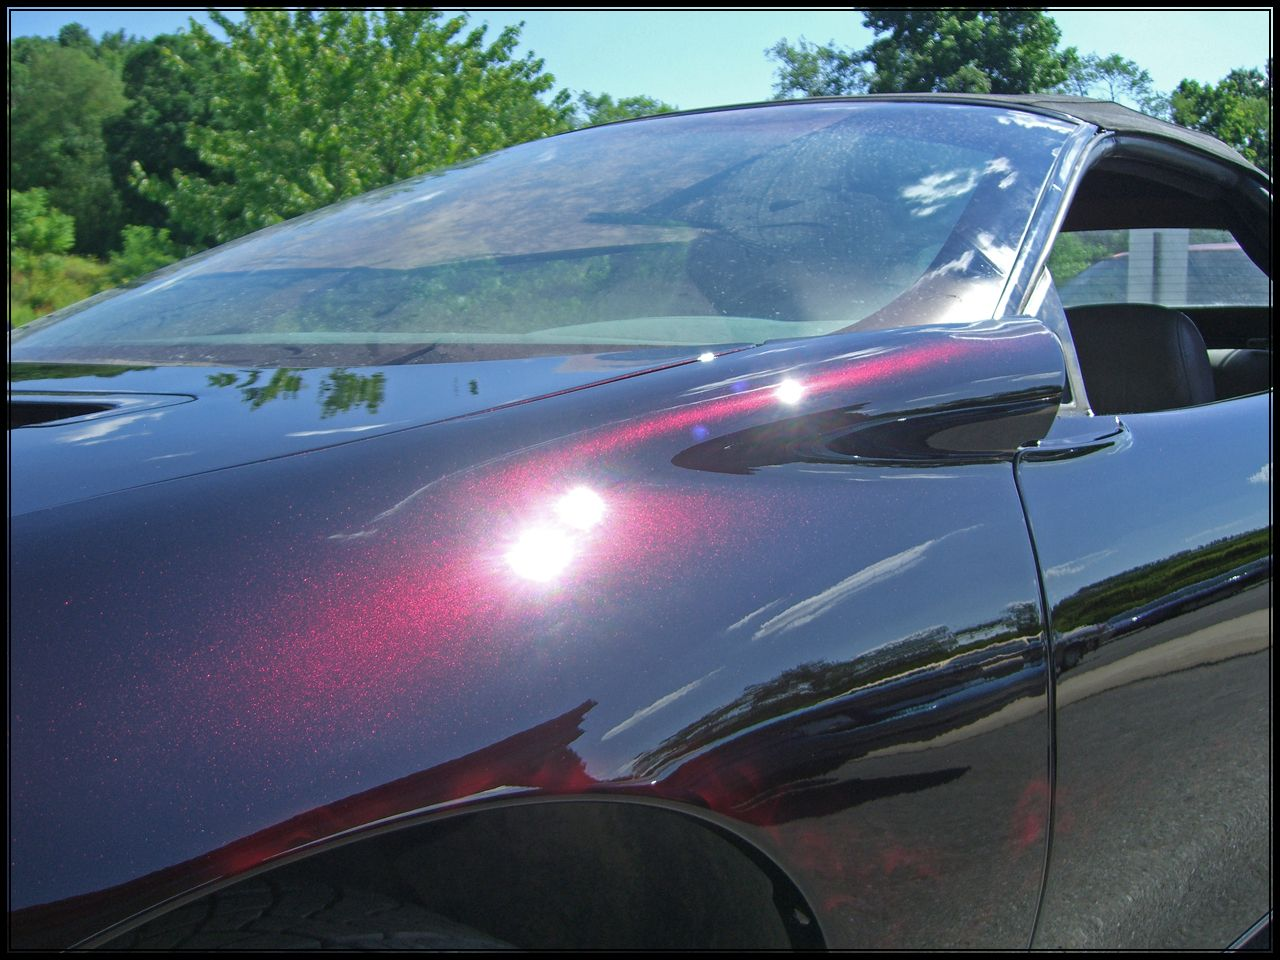 Pin By Ronni Boyd On Colors To Paint The Firebird Car Spray Paint Car Painting Car Inspiration